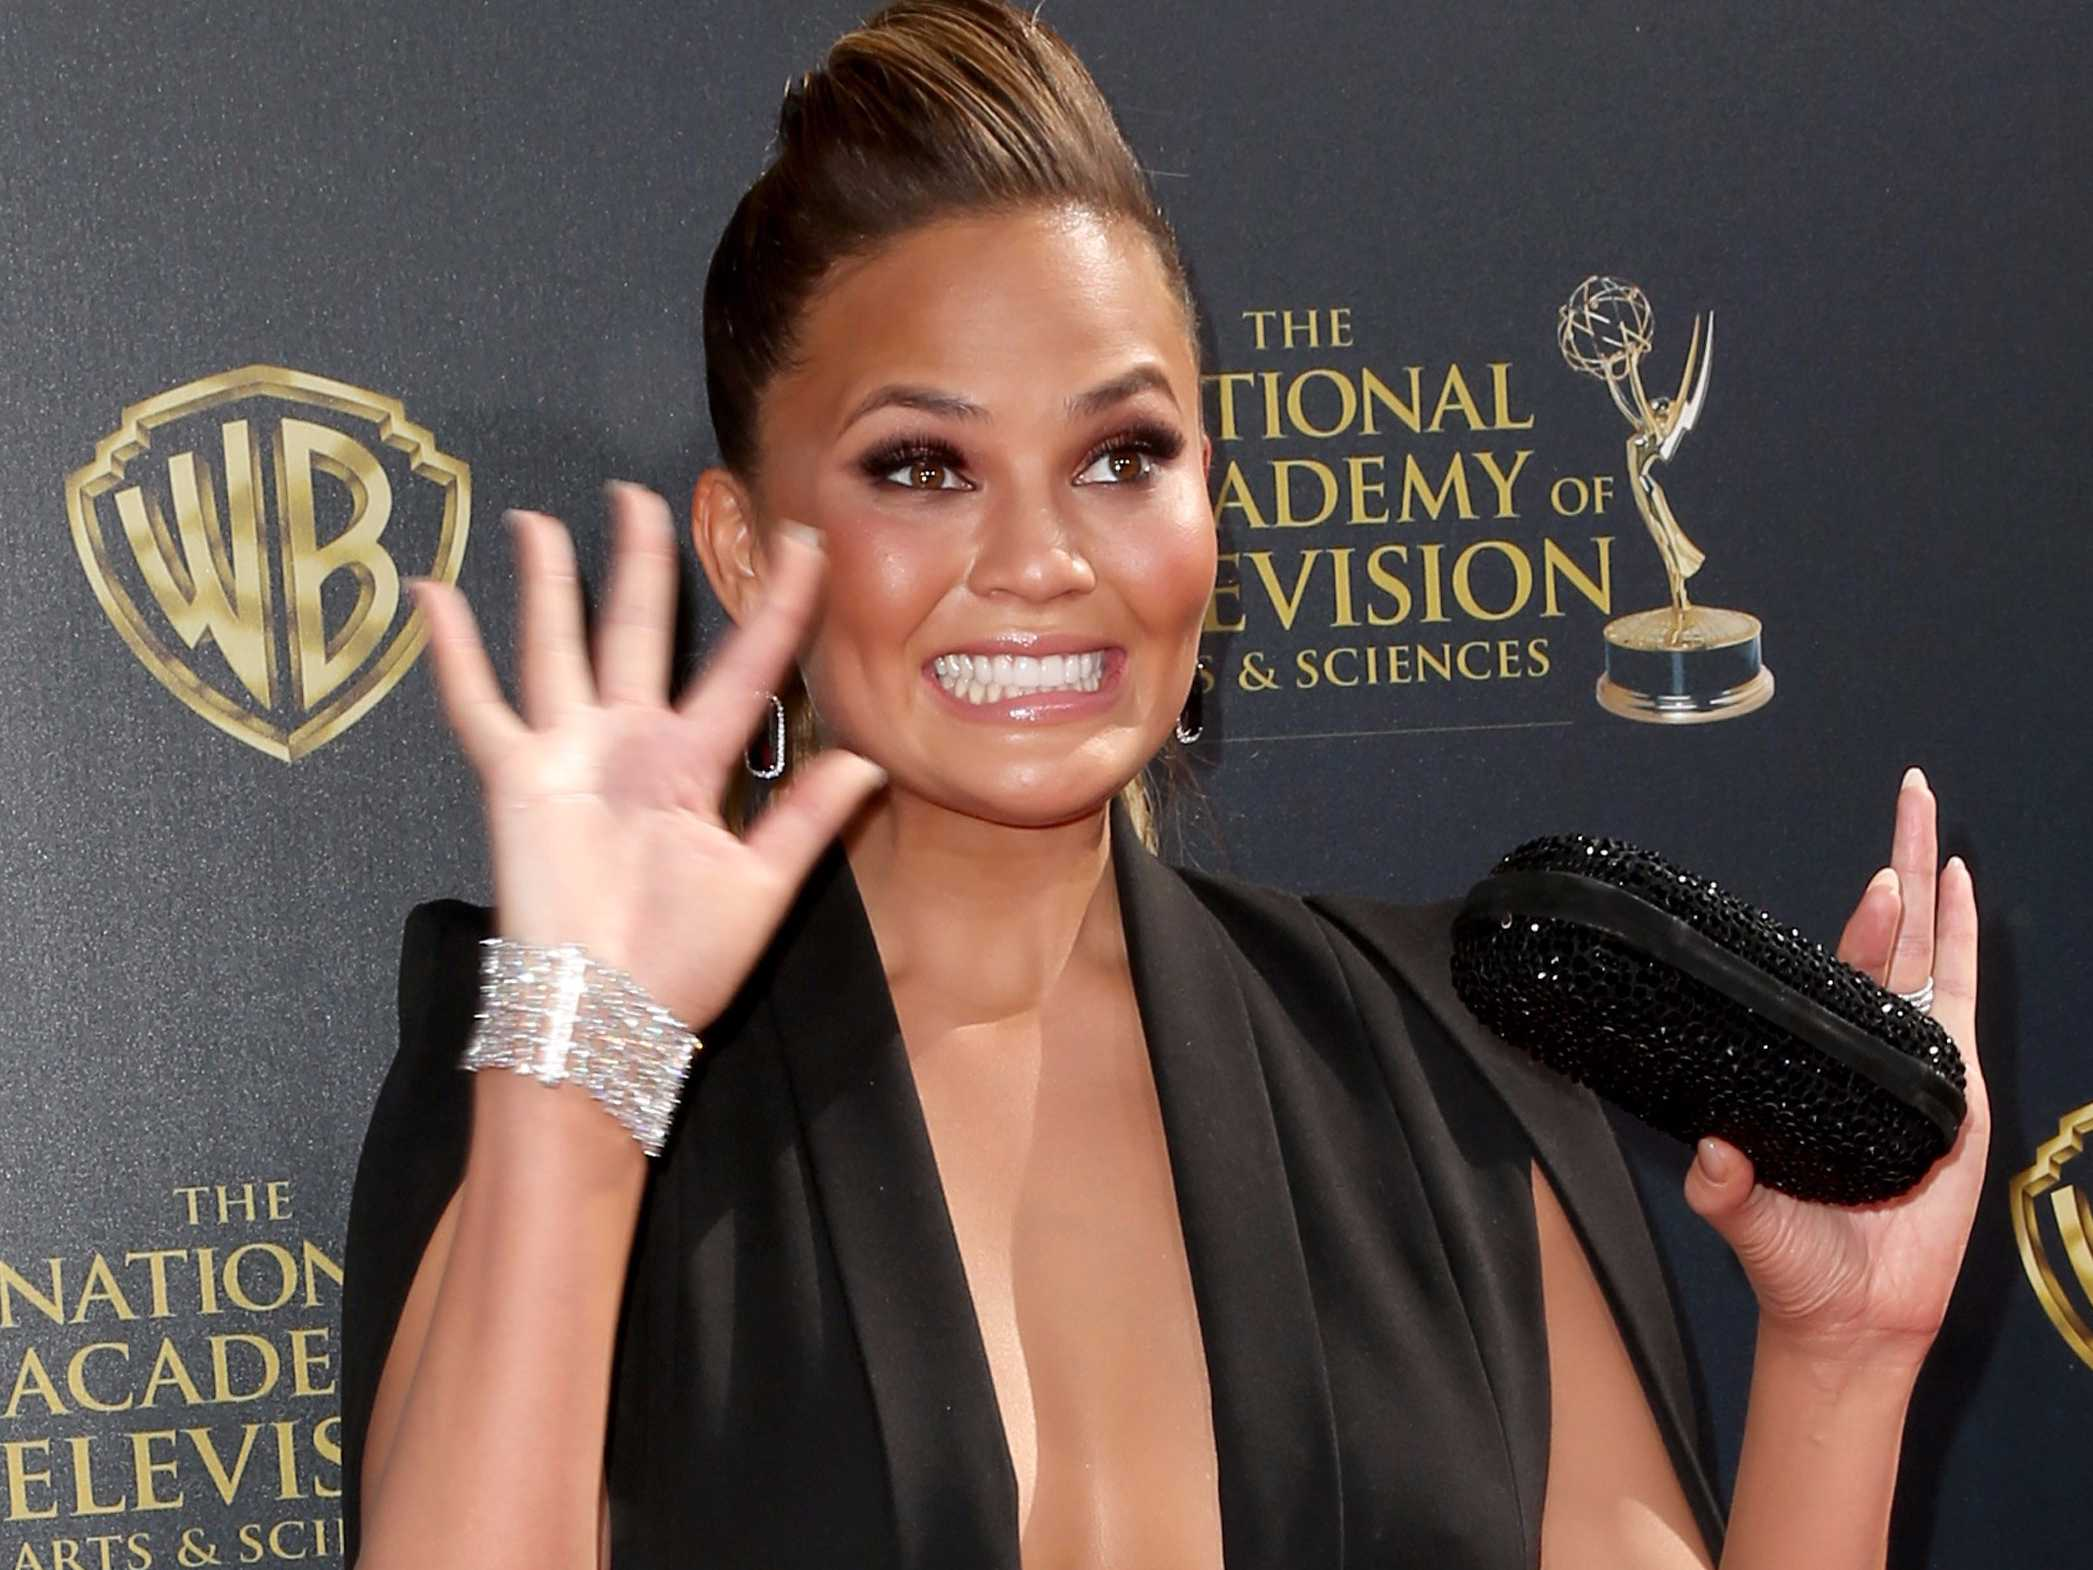 An airliner flew 8 hours over the Pacific Ocean with a passenger who was on the wrong plane — and Chrissy Teigen live-tweeted the whole incident